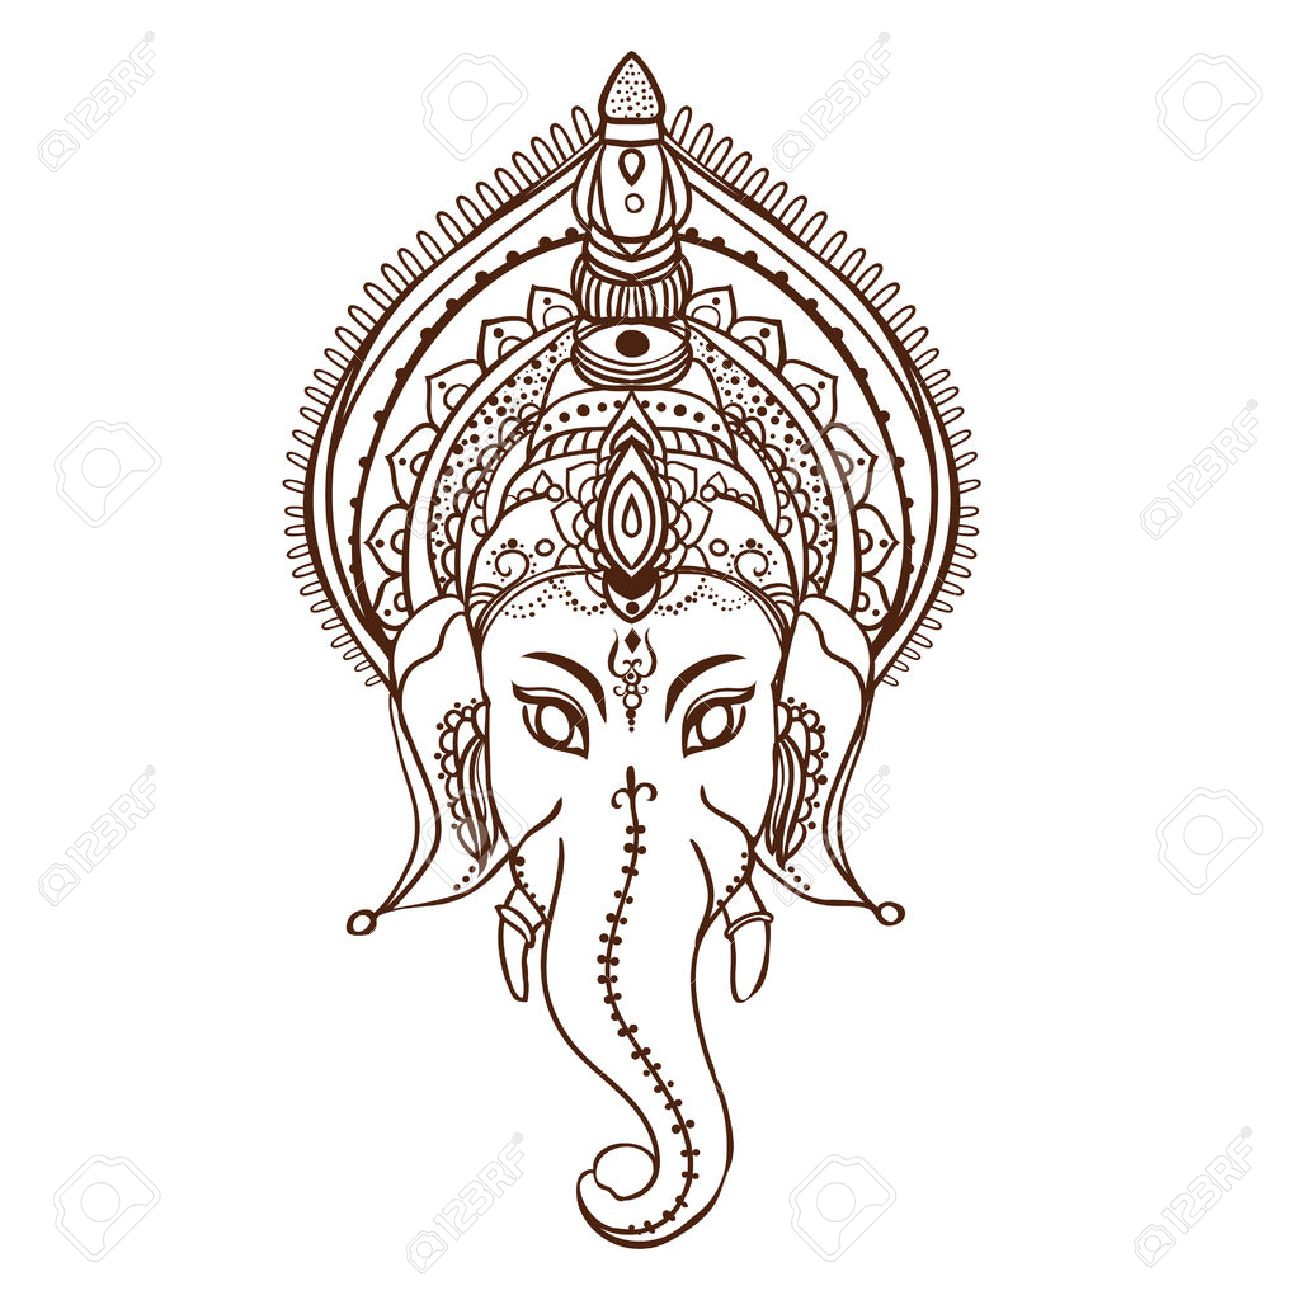 Ganesha Stock Photos And Images 123rf